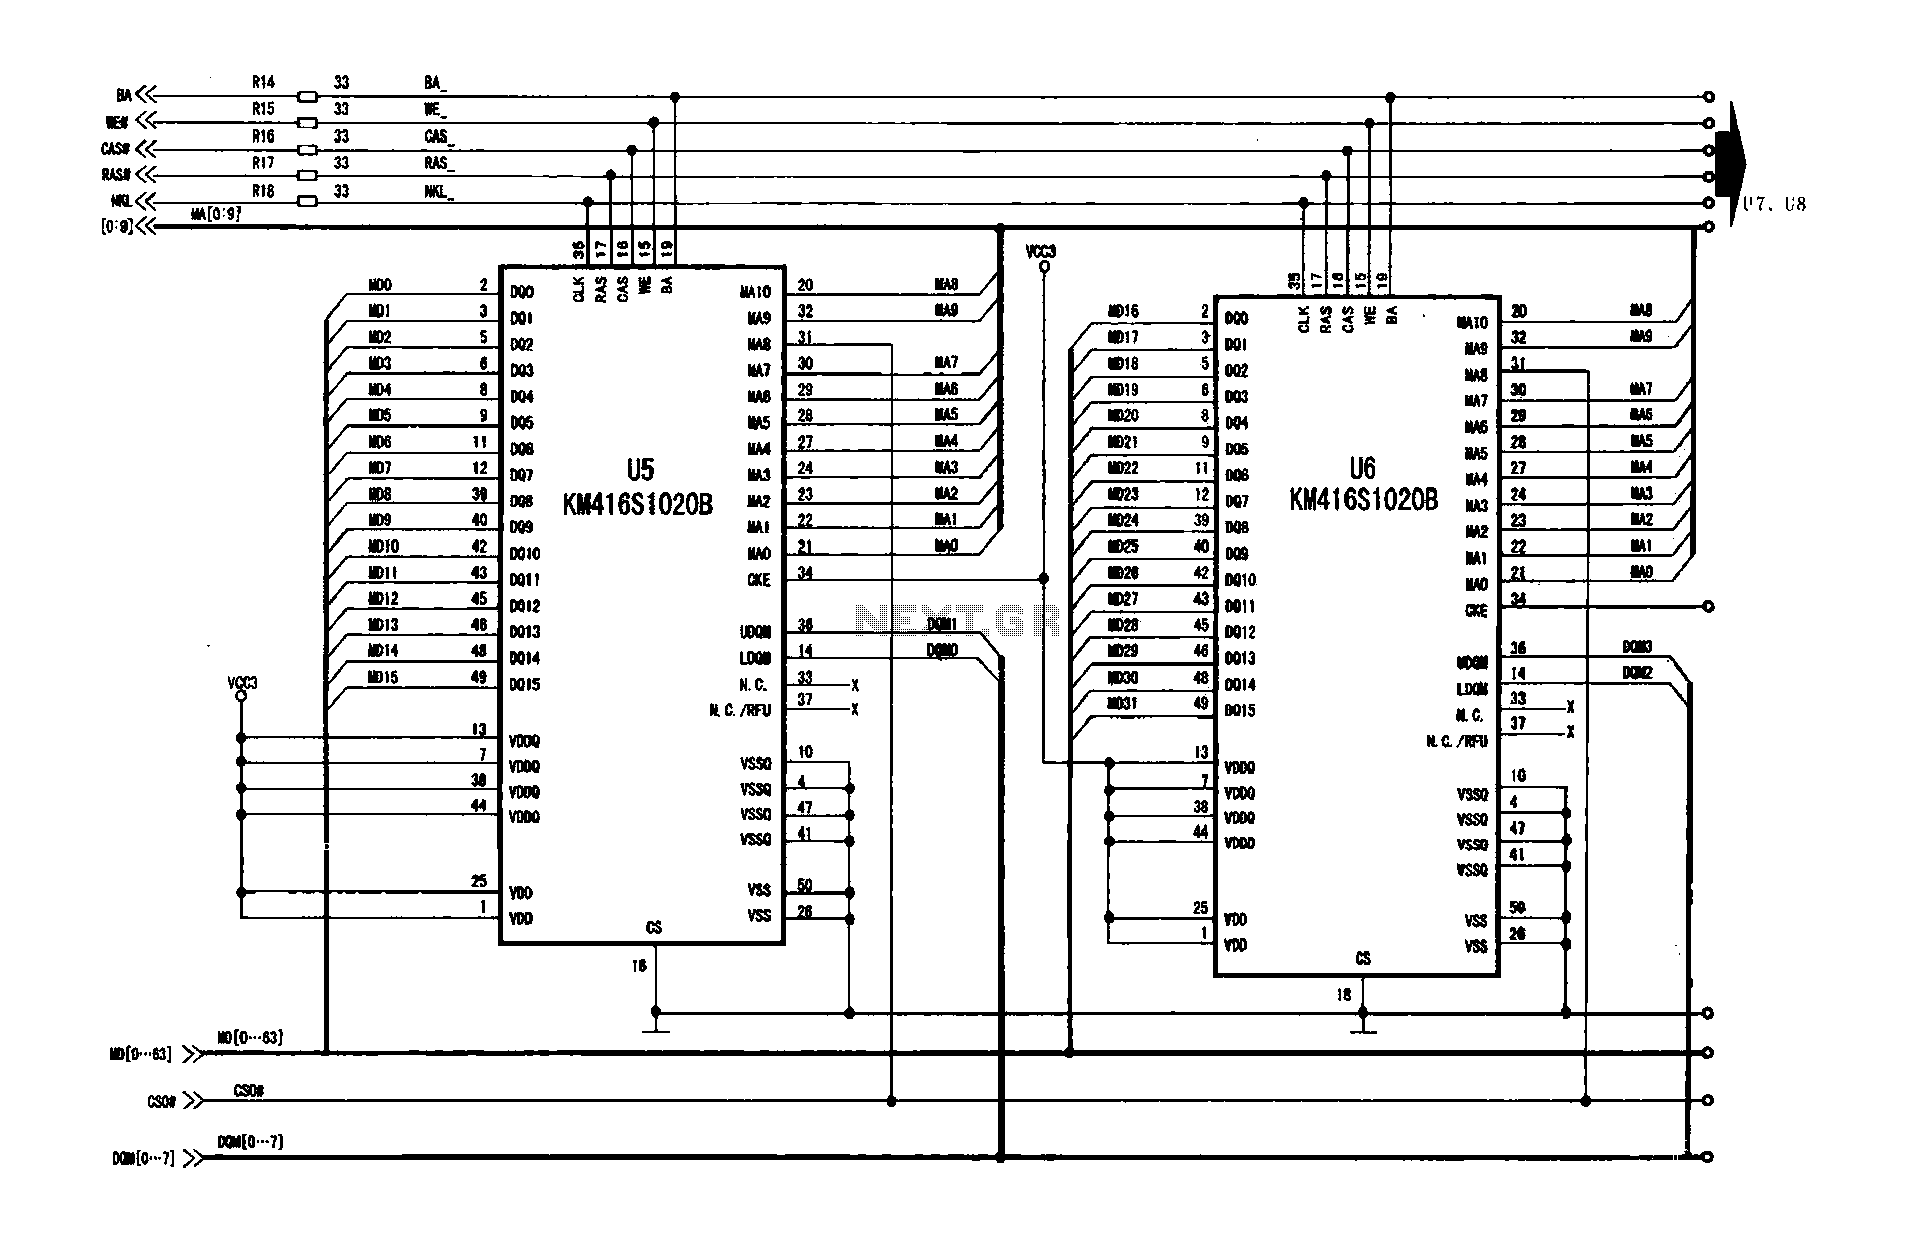 The frame memory circuit